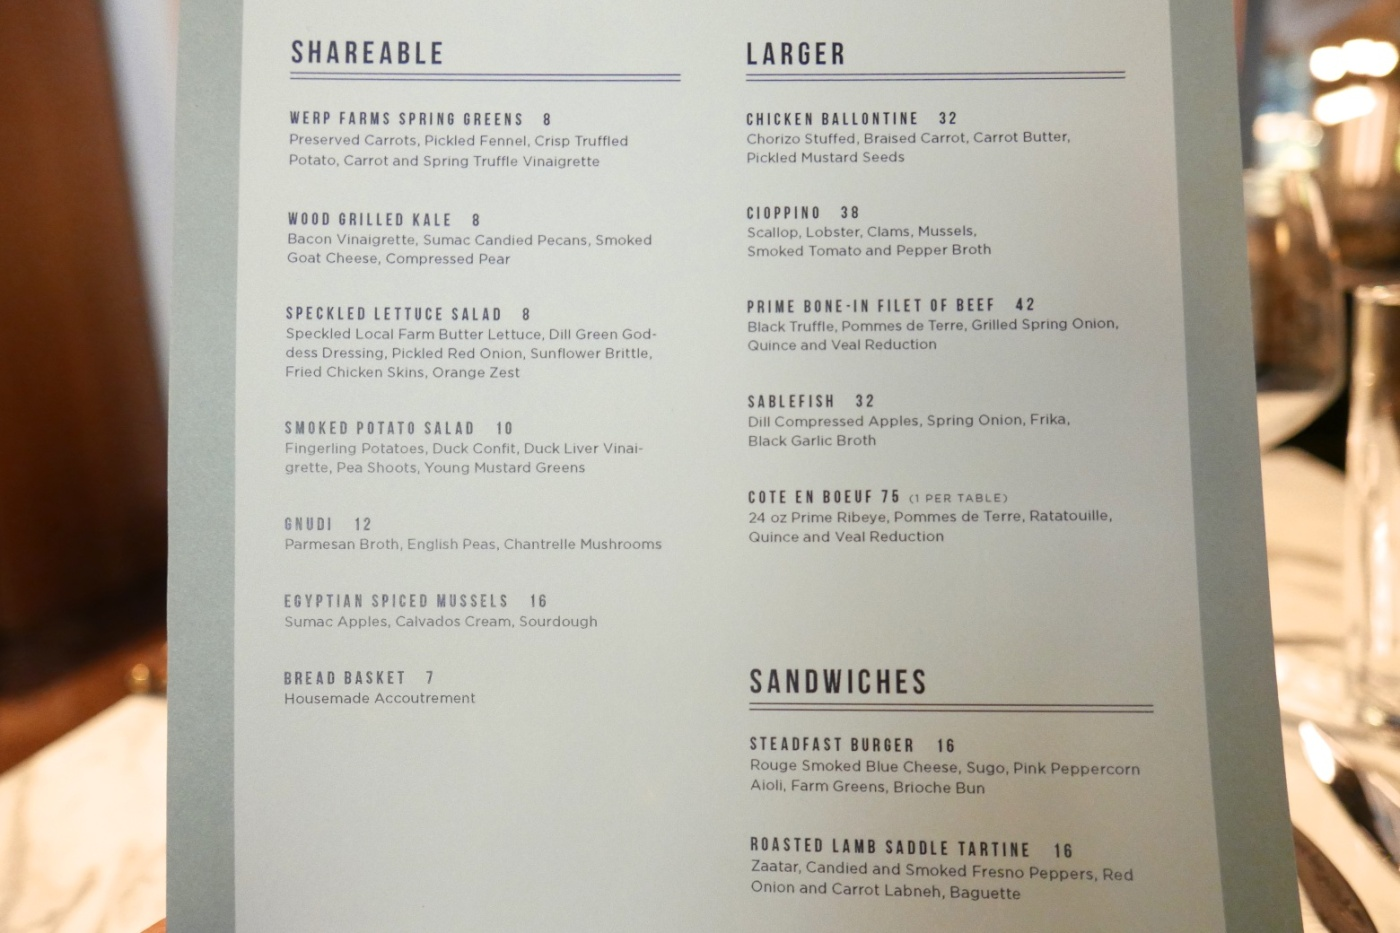 Menu at Steadfast